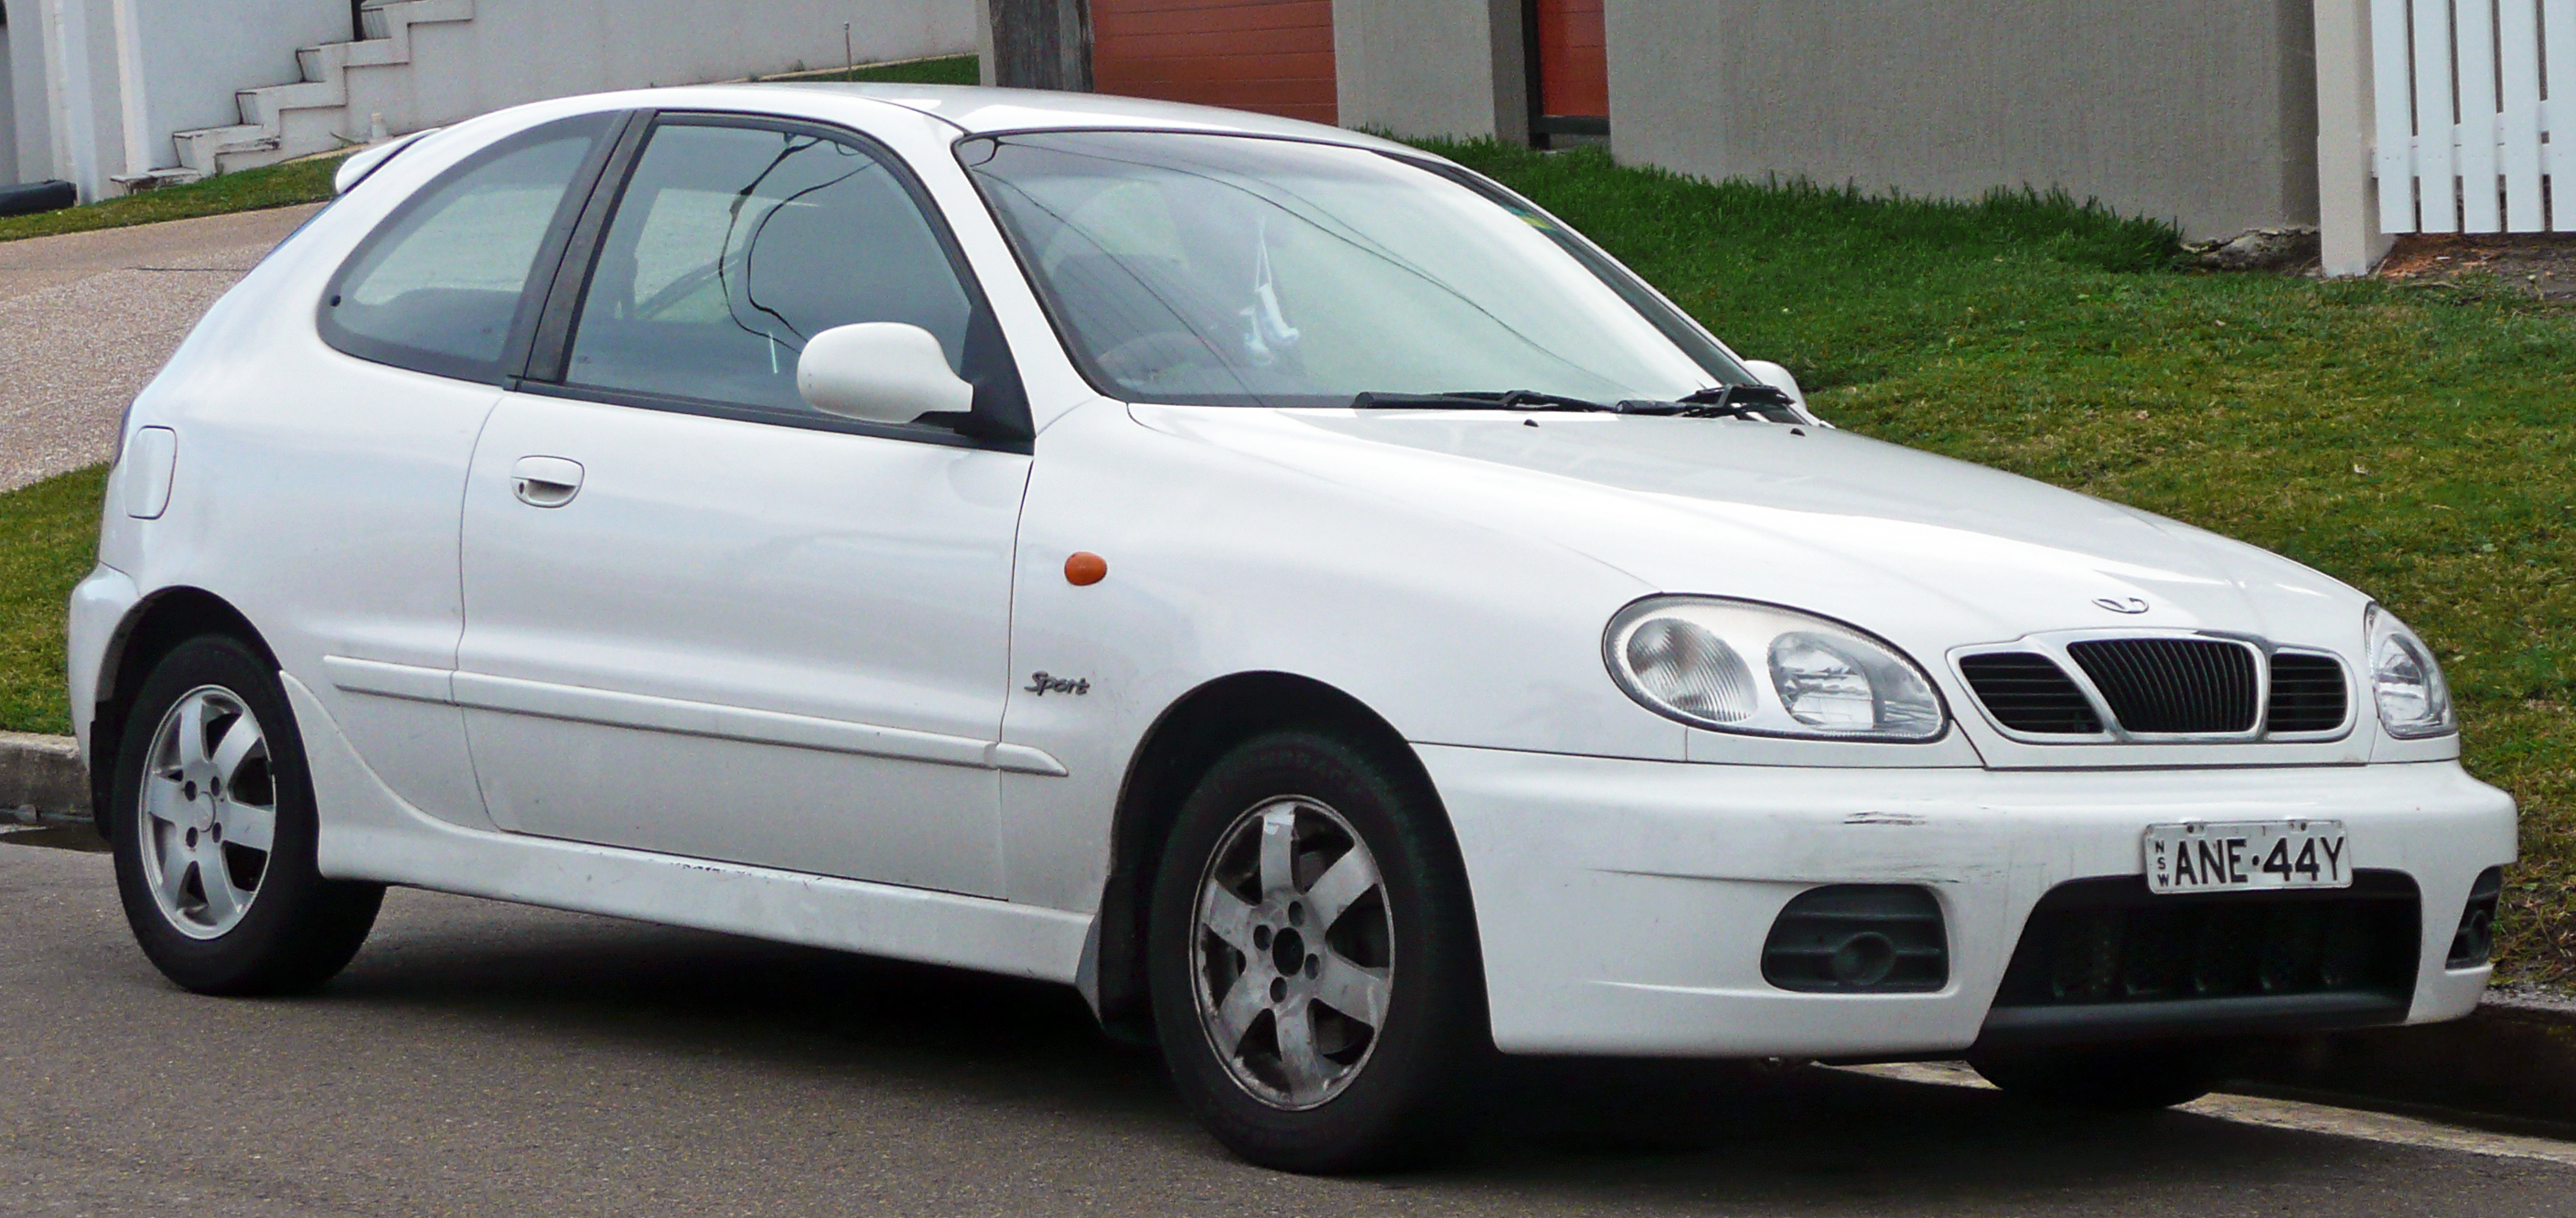 daewoo images #1